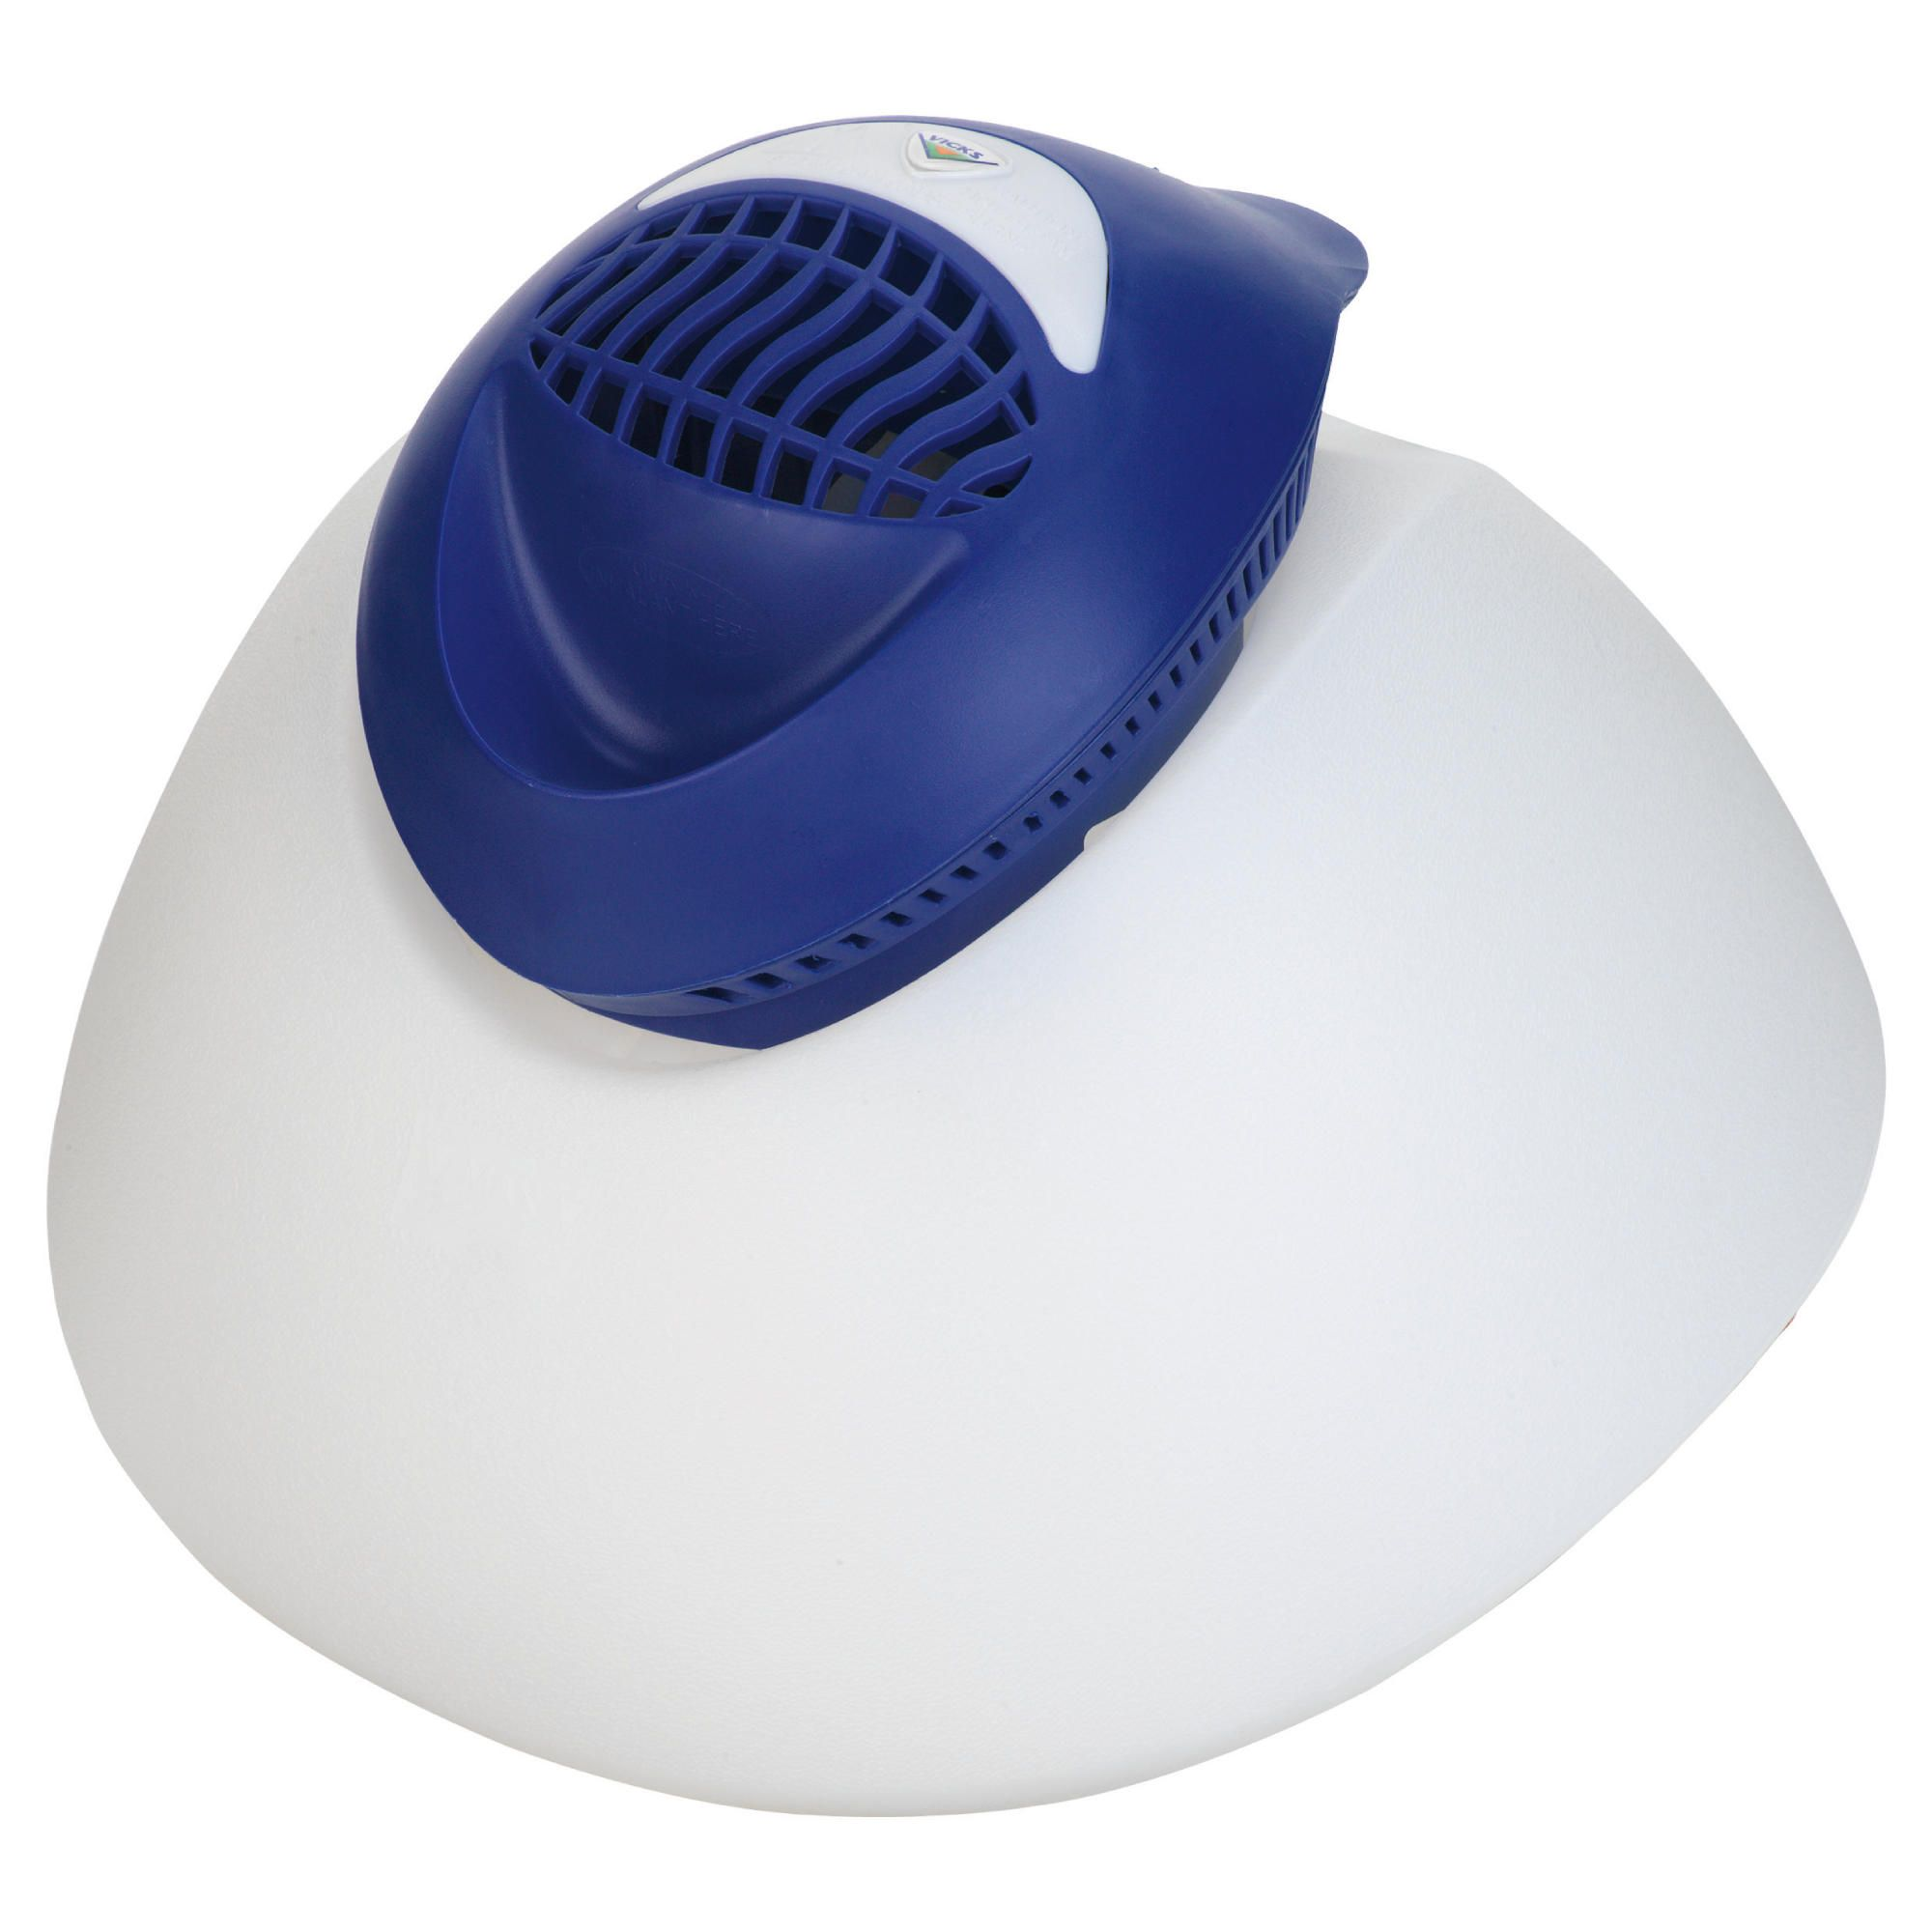 vicks humidifier #111A38